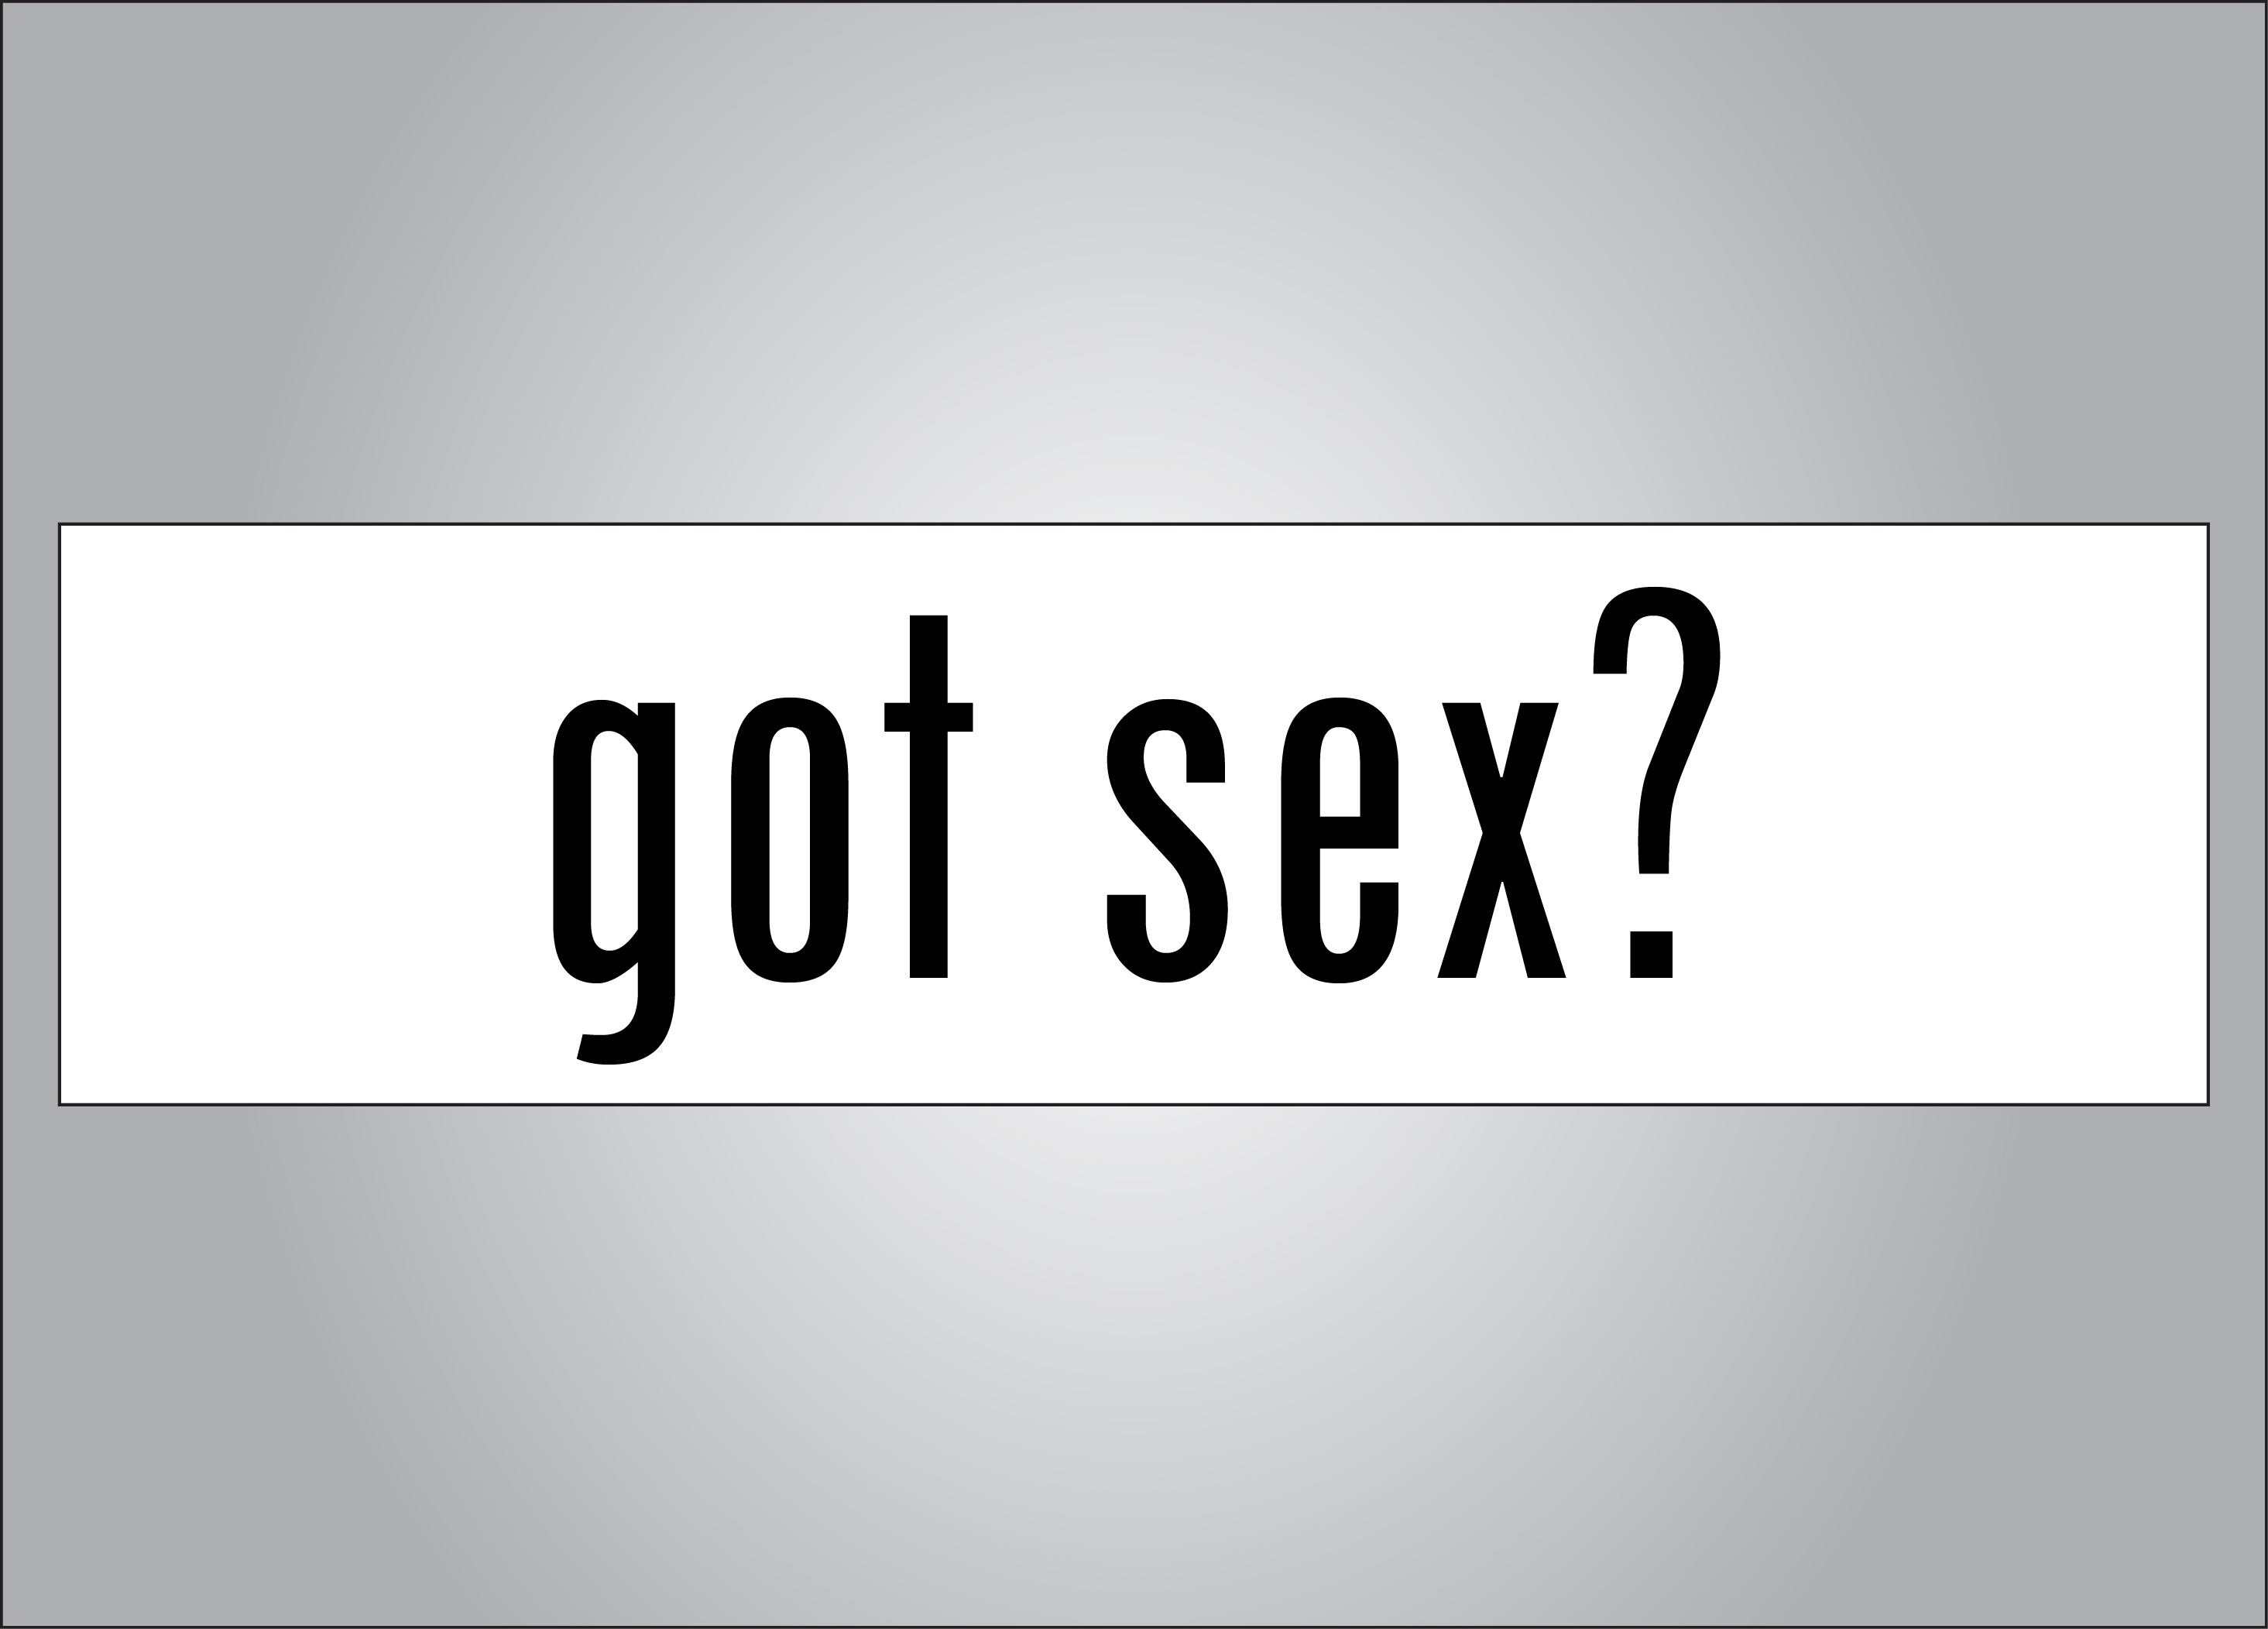 Got sex? Parody bumper sticker - who needs milk?